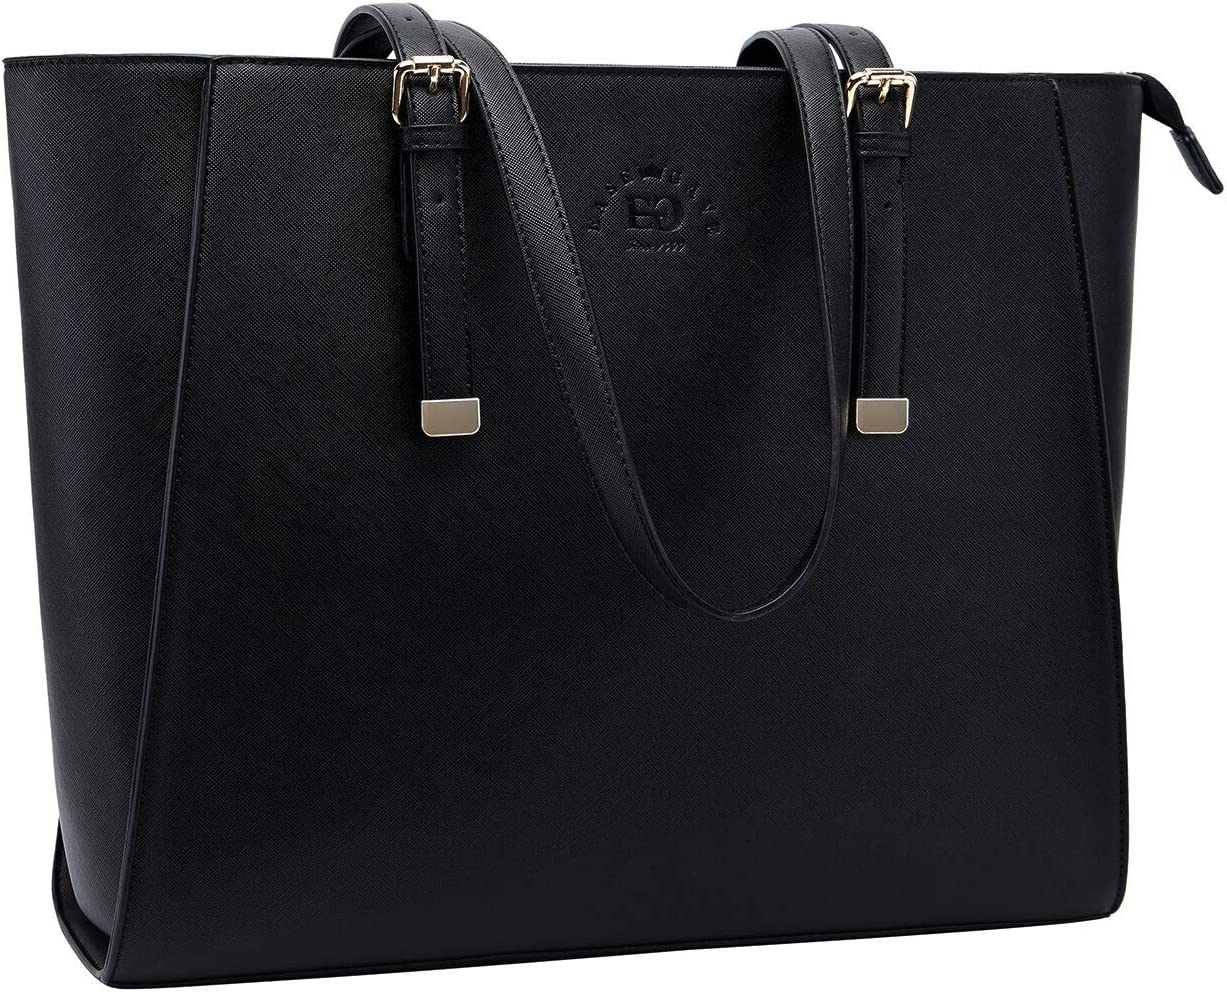 Laptop-Bag-for-Women, Laptop-Tote -Bag 15.6 Inch Functional Computer-Bags Classic Work-Tote-Bag for Interviews Commutes Work Weekend Travel, Black